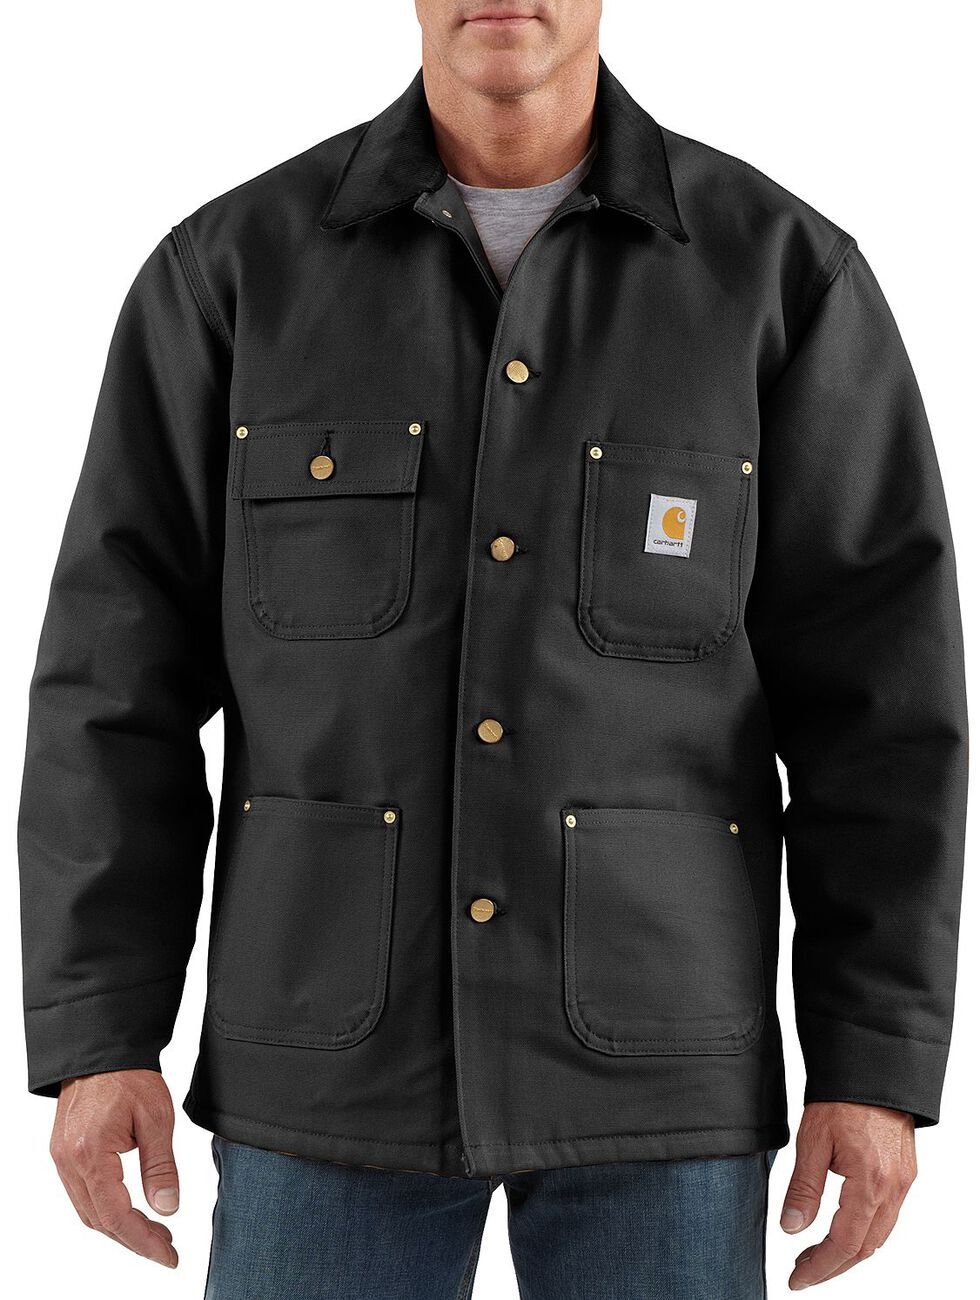 Carhartt Duck Chore Coat, Black, hi-res